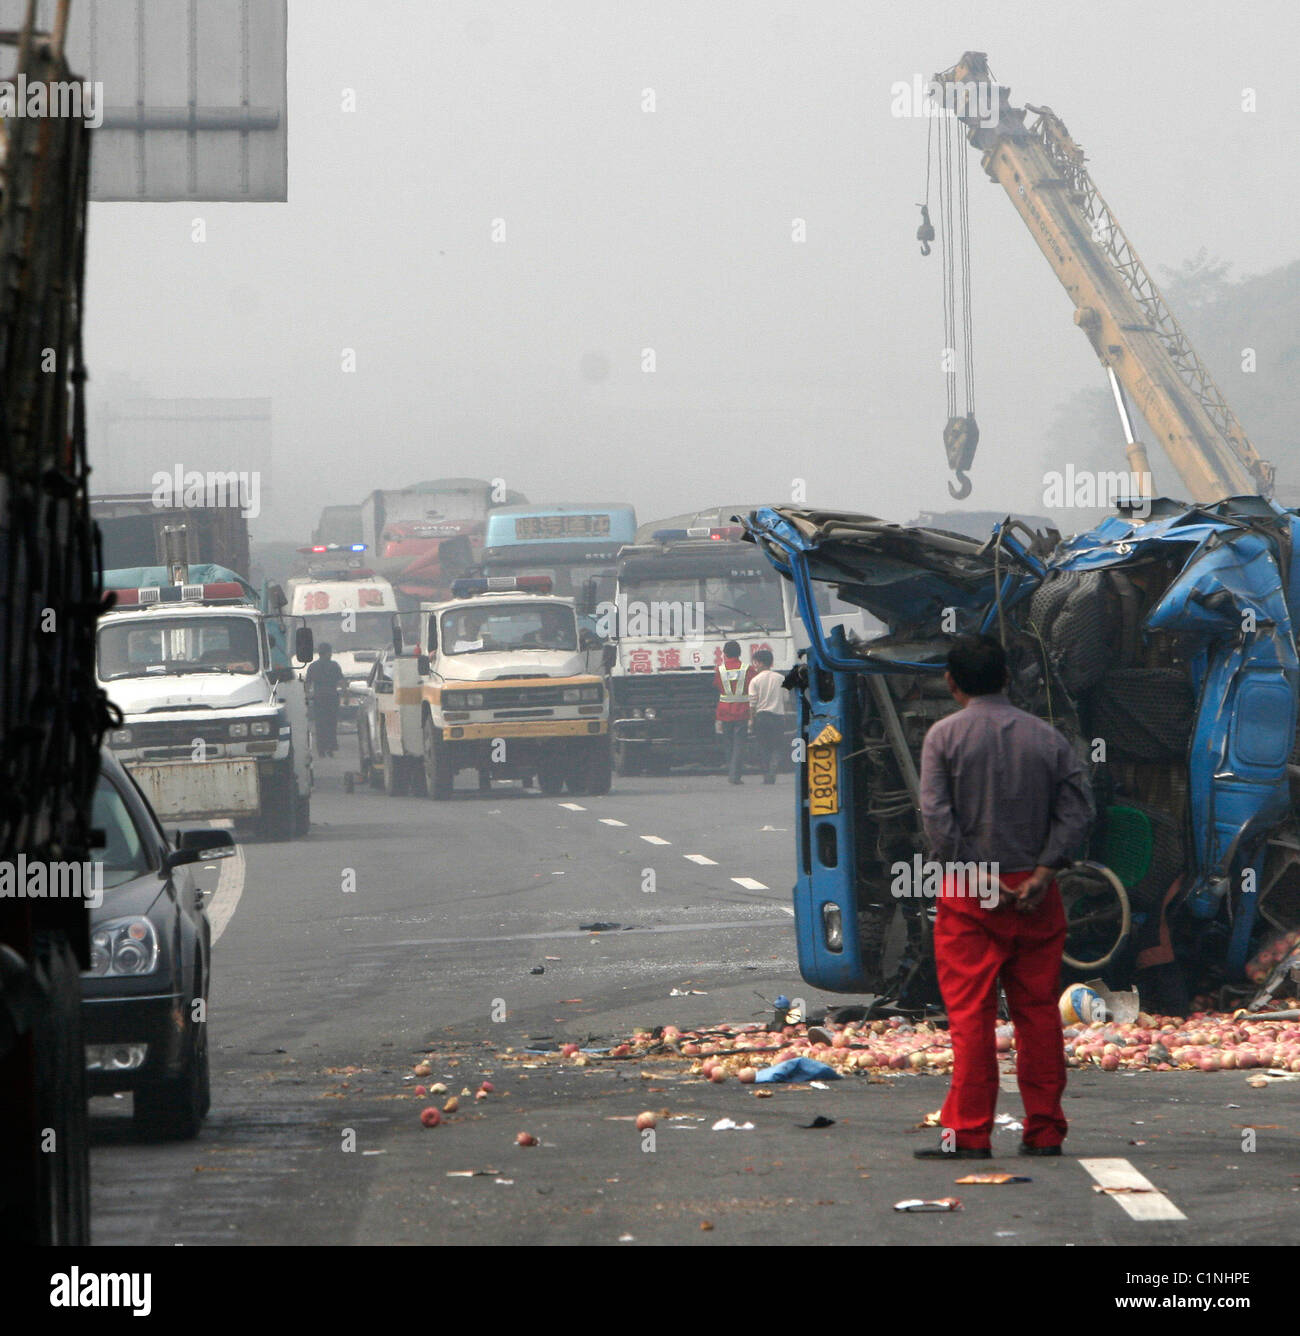 The aftermath of a deadly traffic accident in Louyang, China